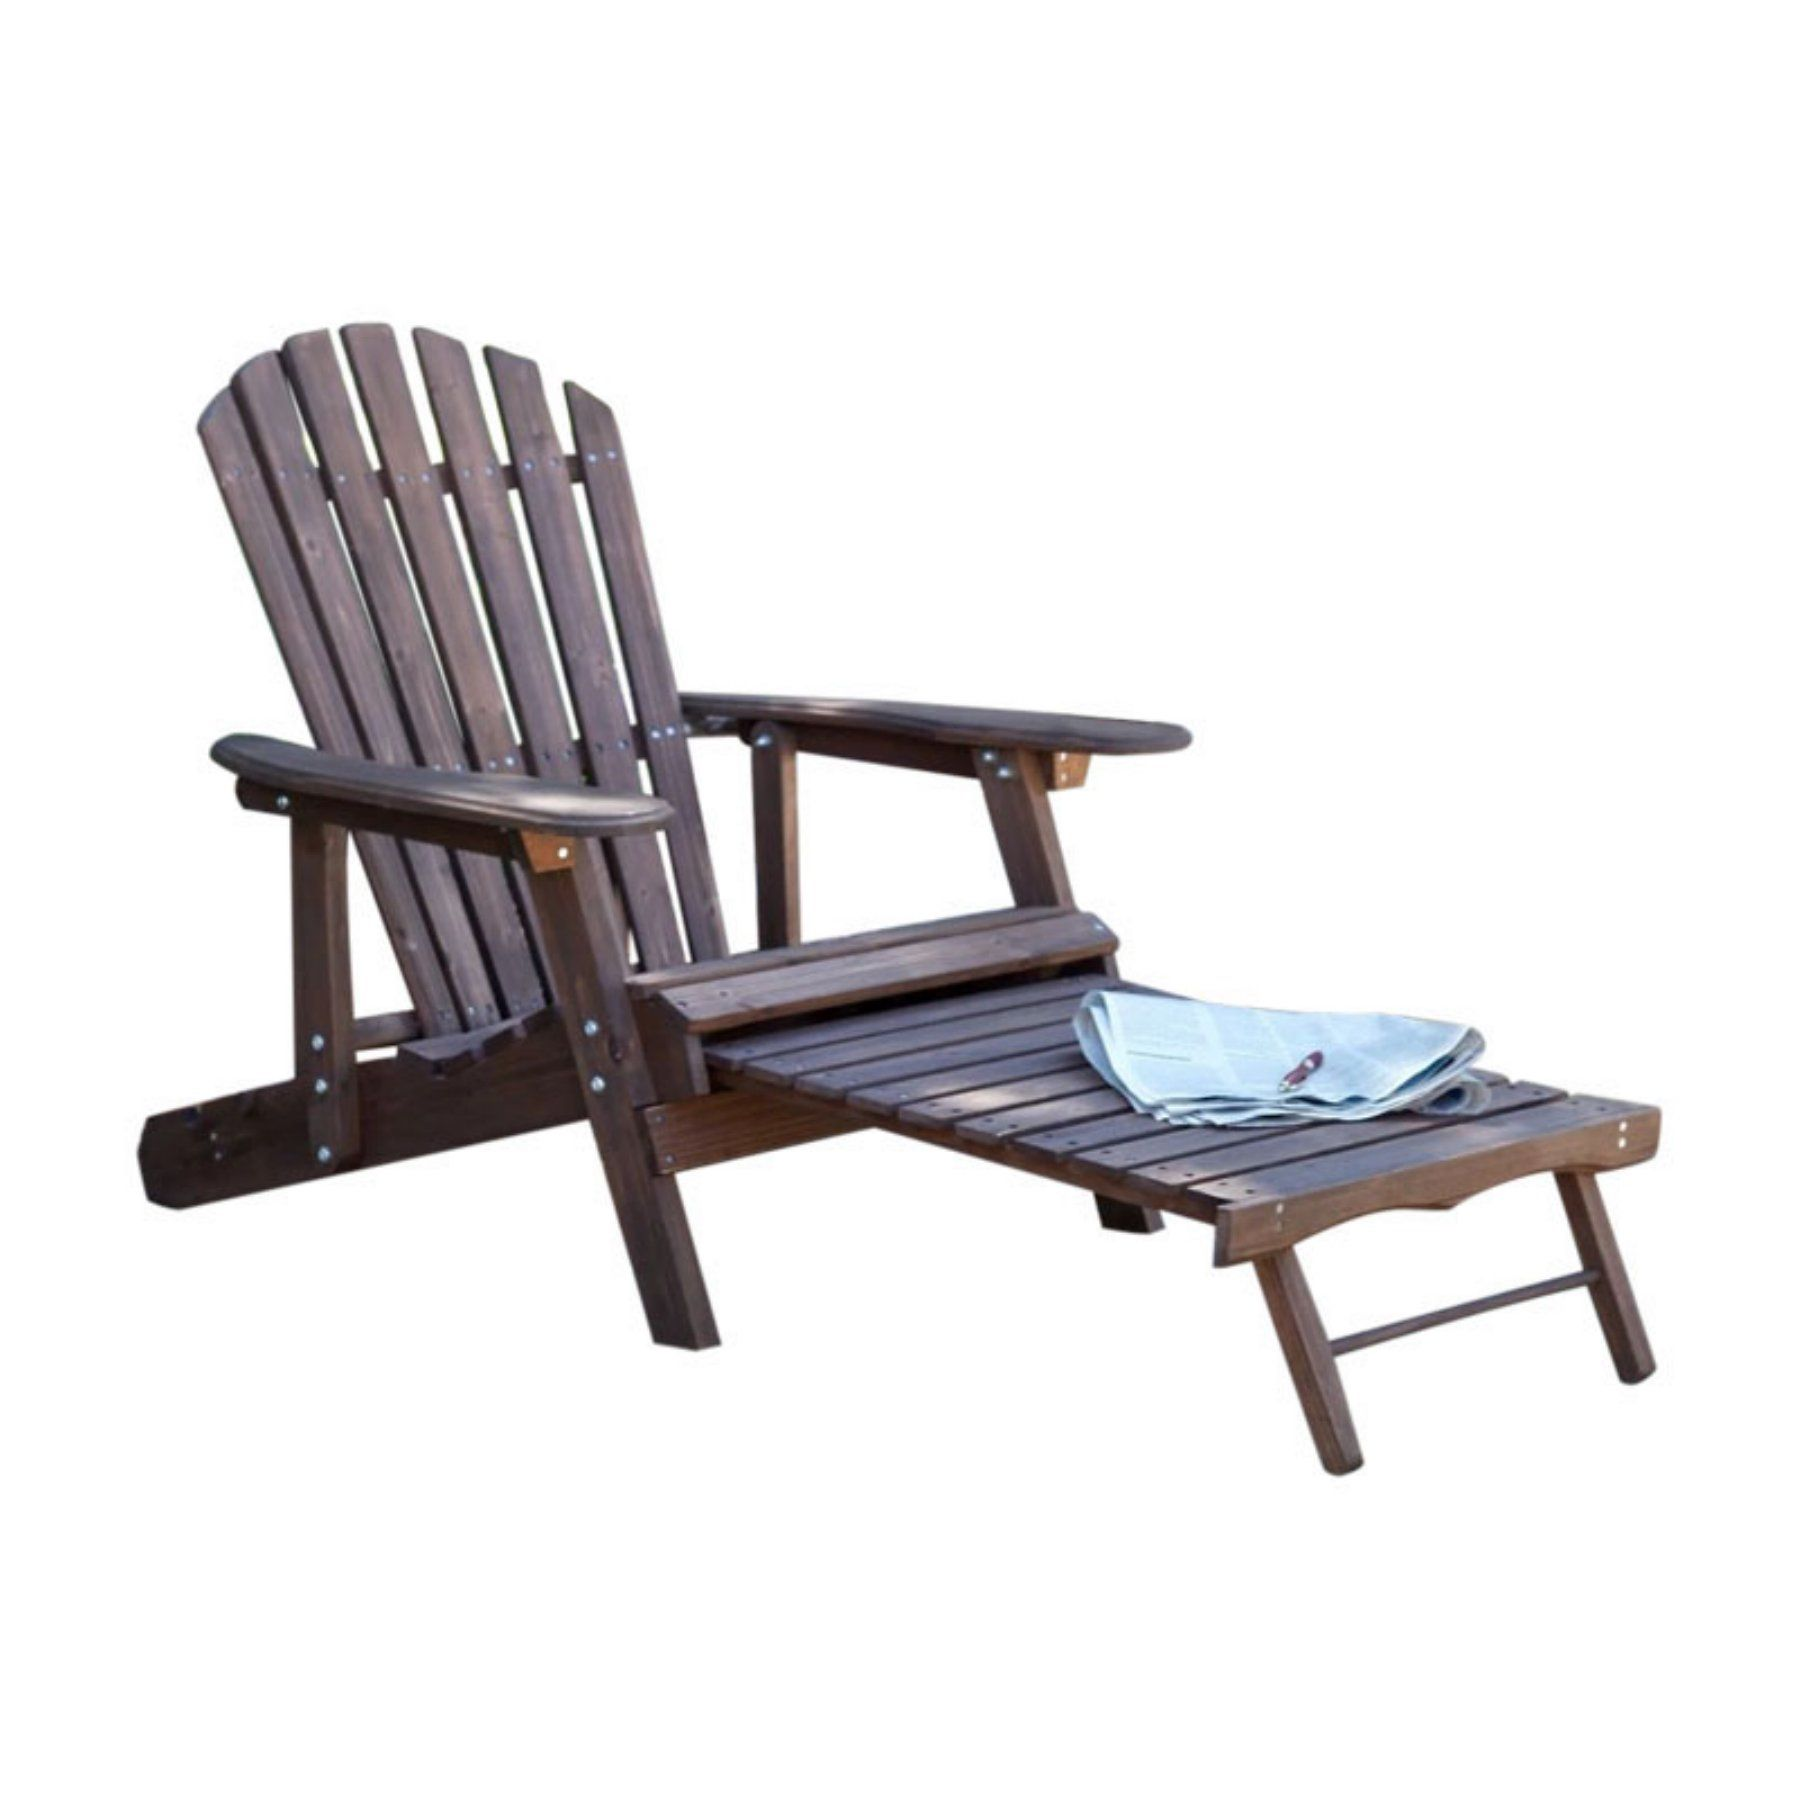 Outdoor W Unlimited Muskoka Adjustable Reclining Adirondack Chair With Ottoman Adirondack Chair Outdoor Chairs Chair